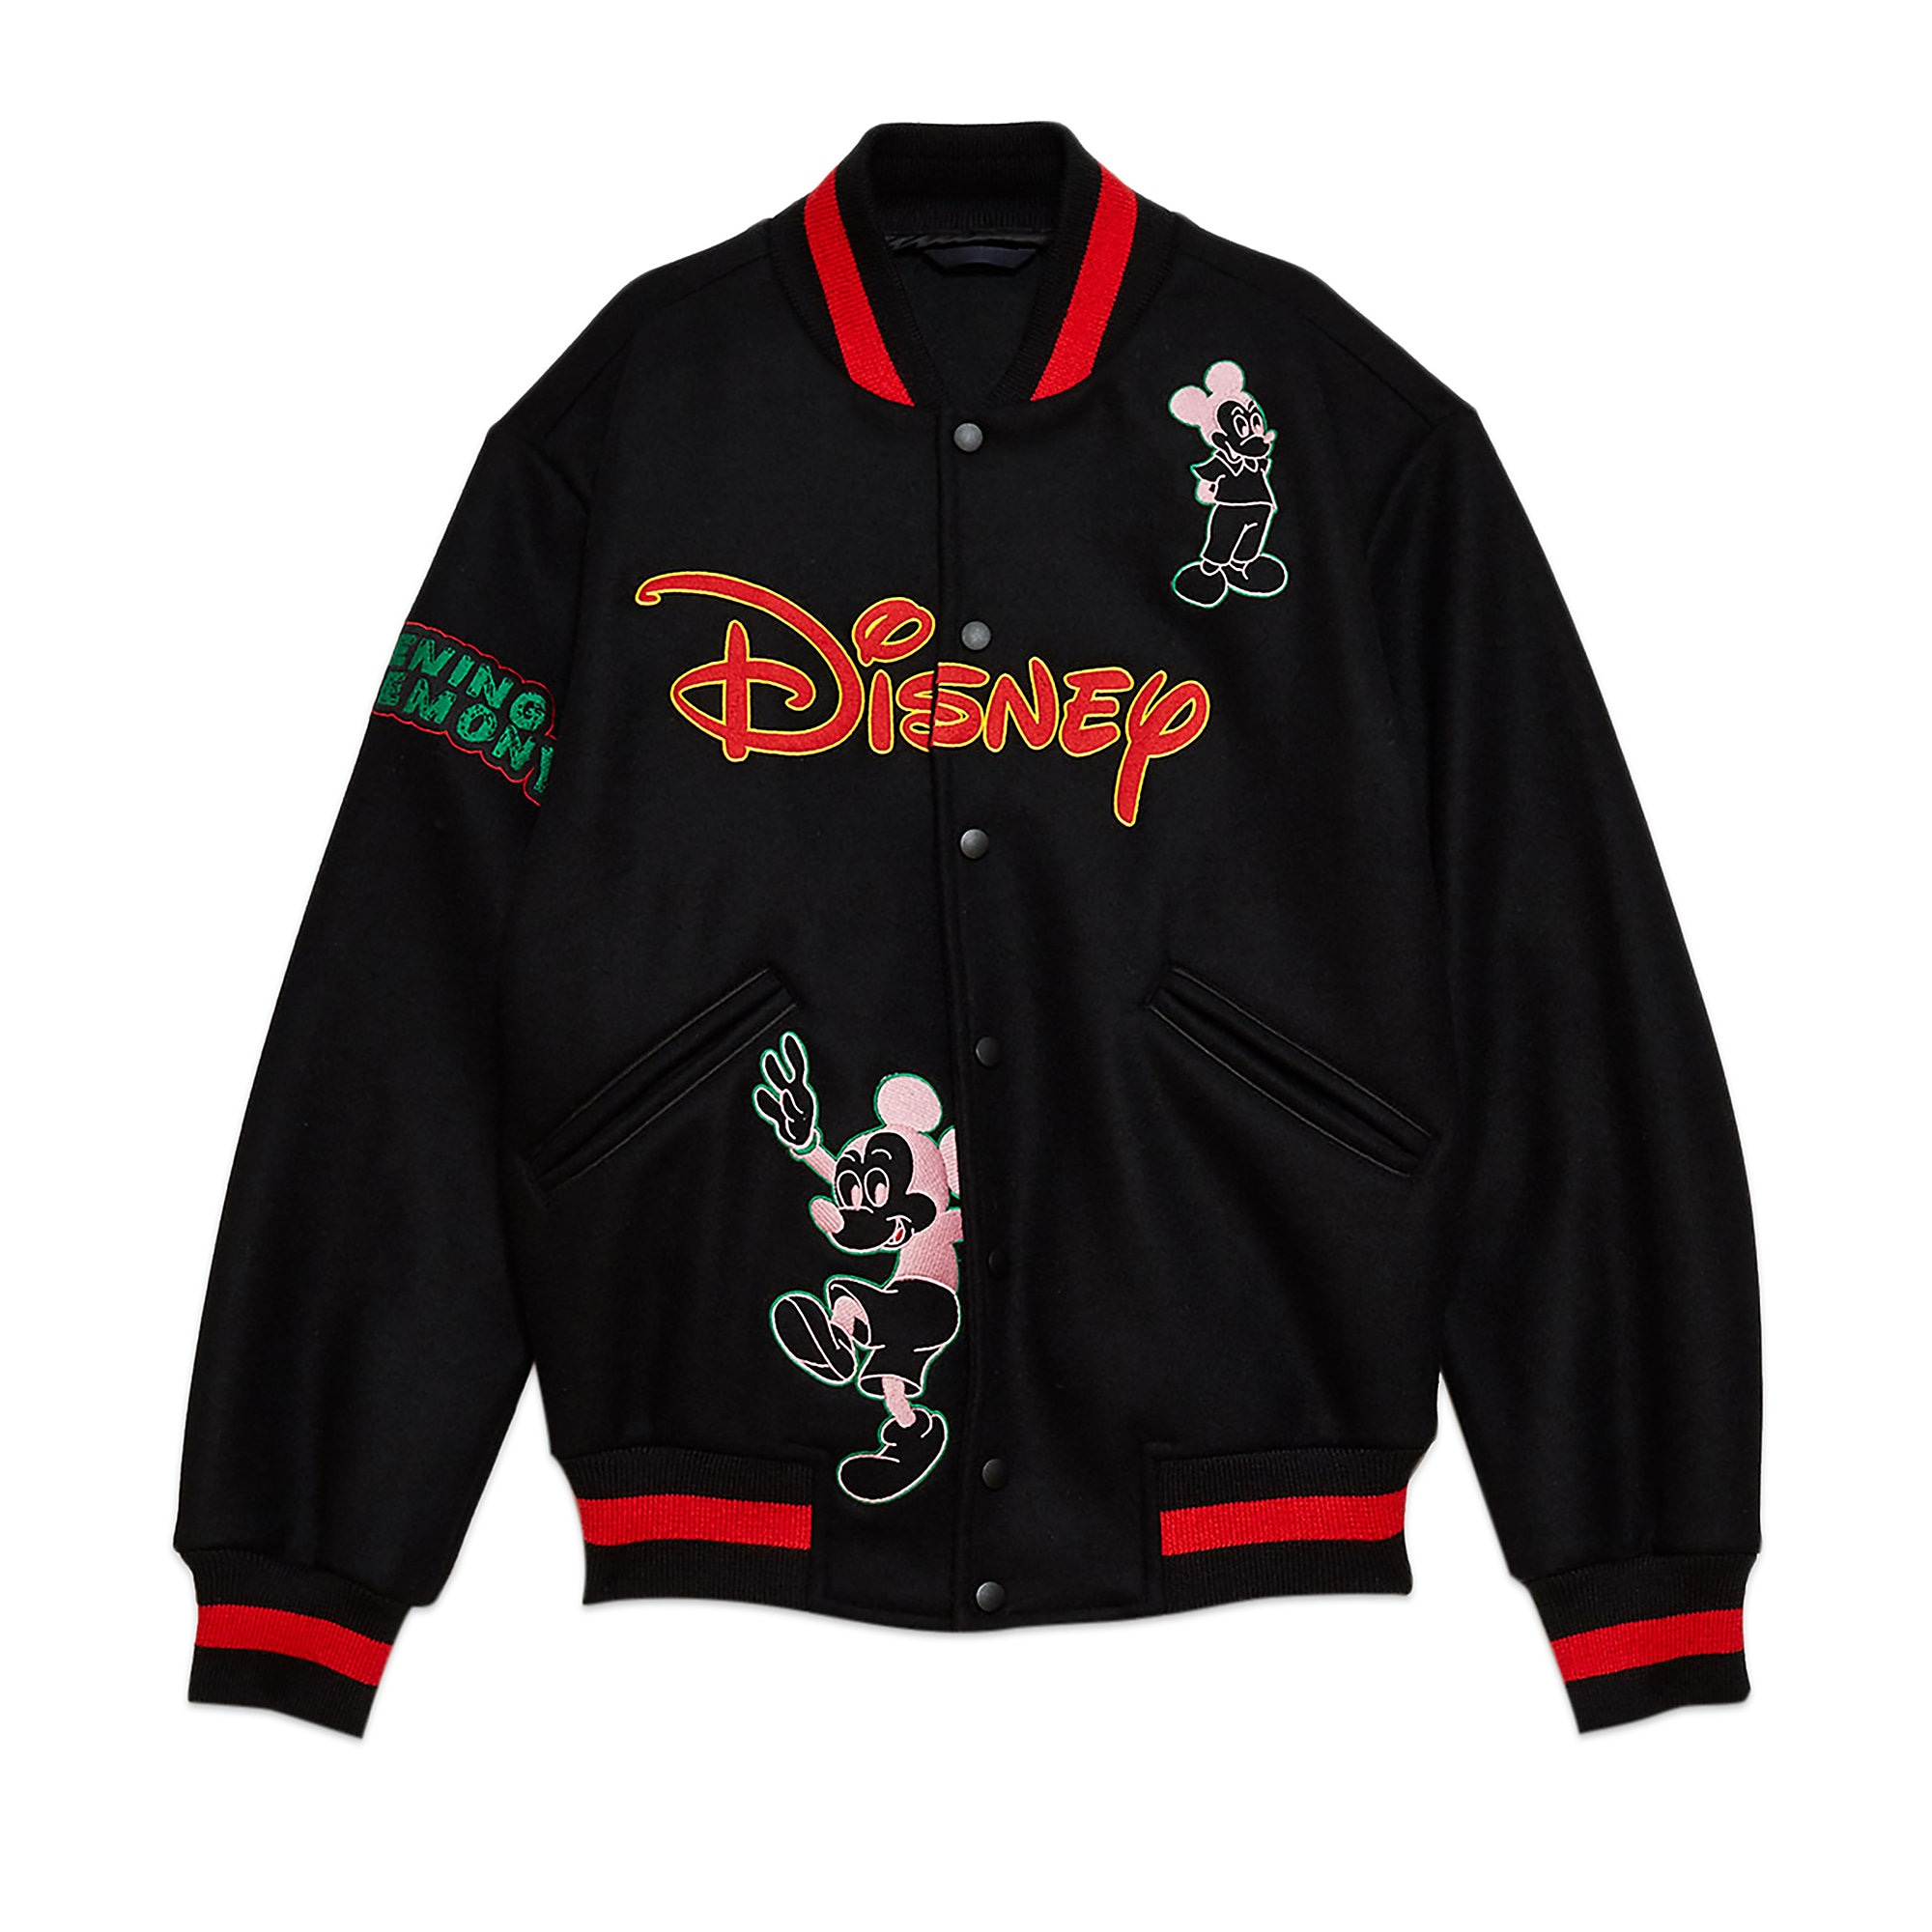 Mickey Mouse Varsity Jacket for Adults by Opening Ceremony